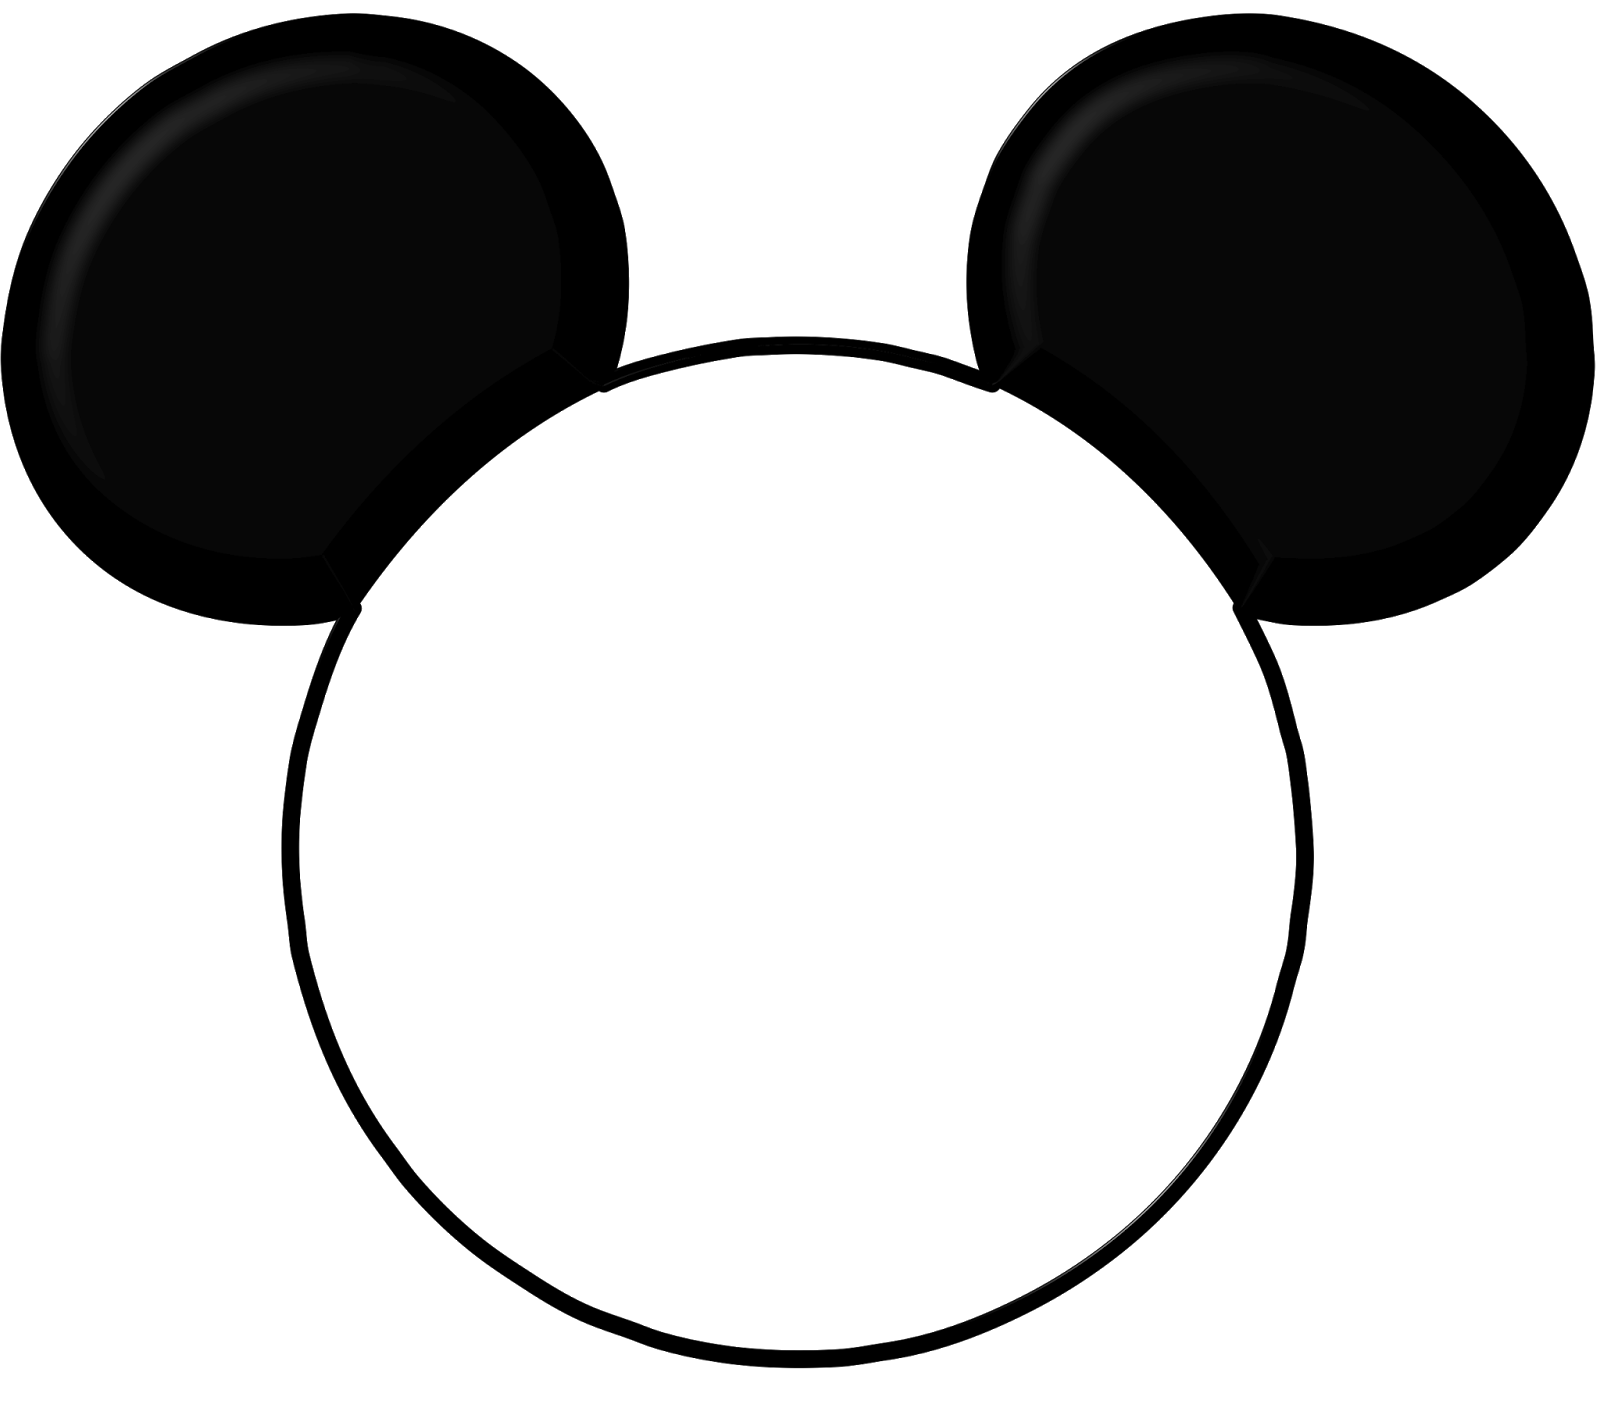 Mickey mouse head outline png. Free download clip art